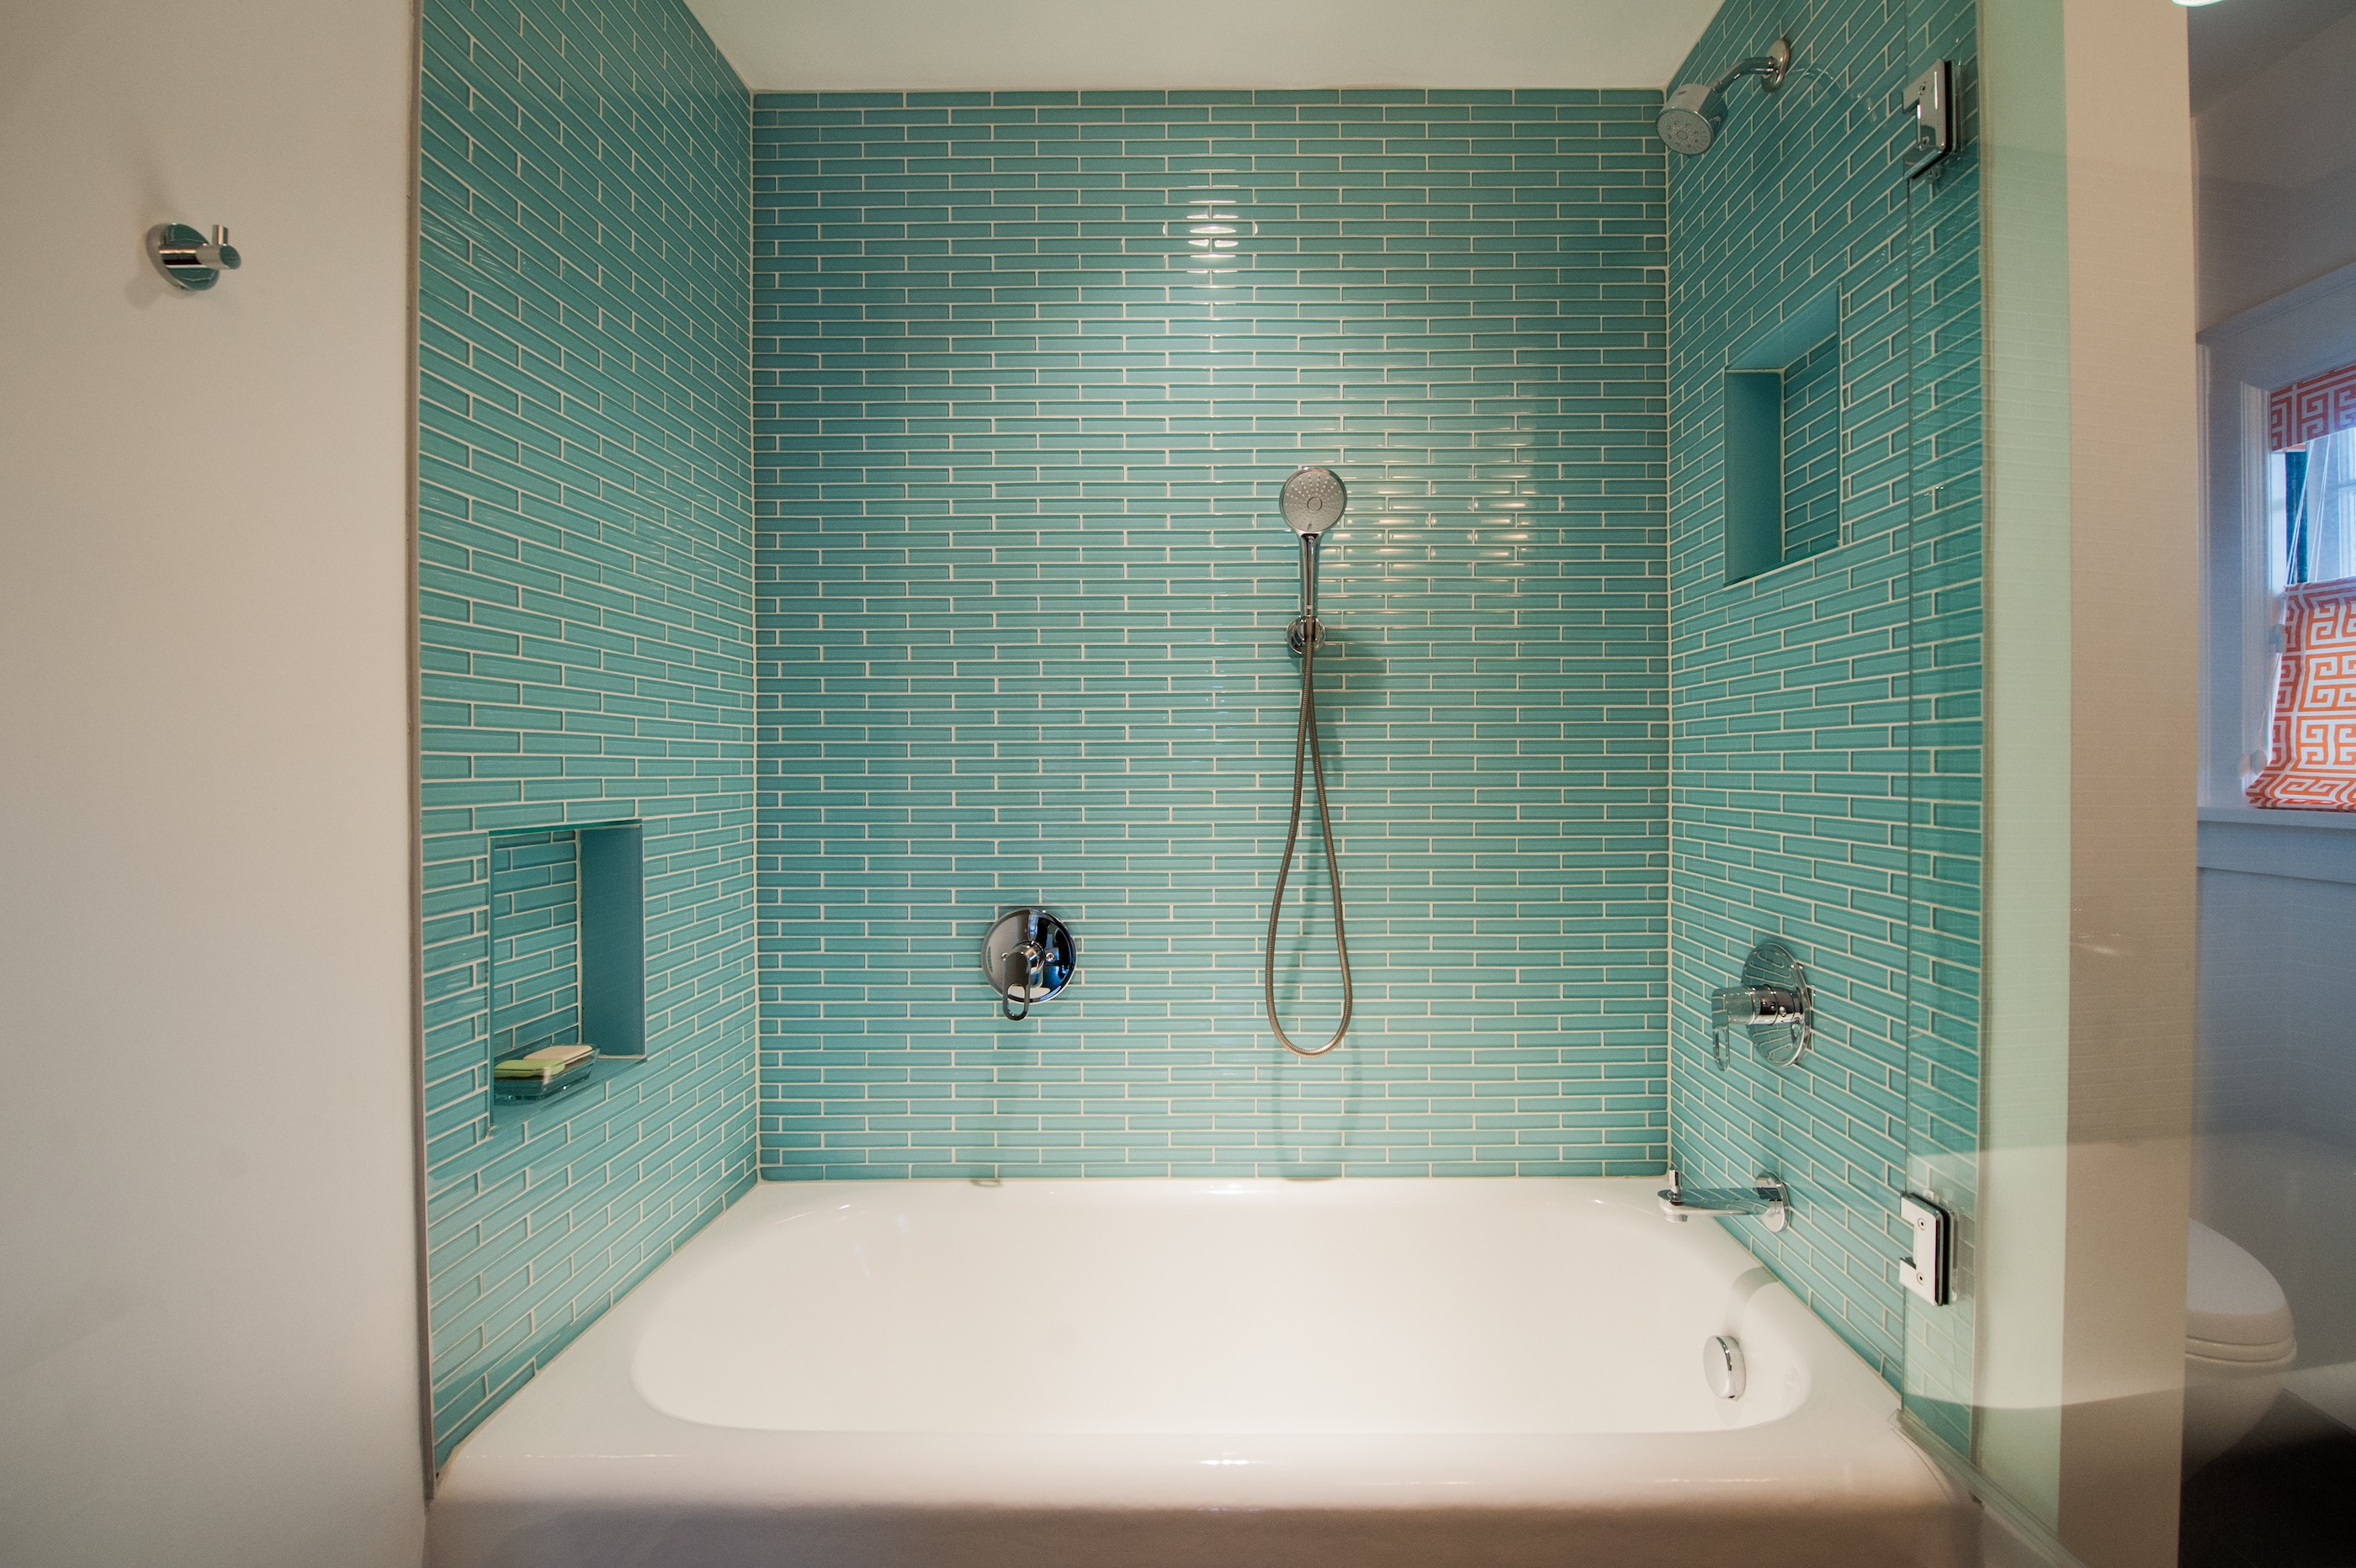 Modern Shower And Bathtub Combo With Blue Tile Backsplash (View 18 of 19)